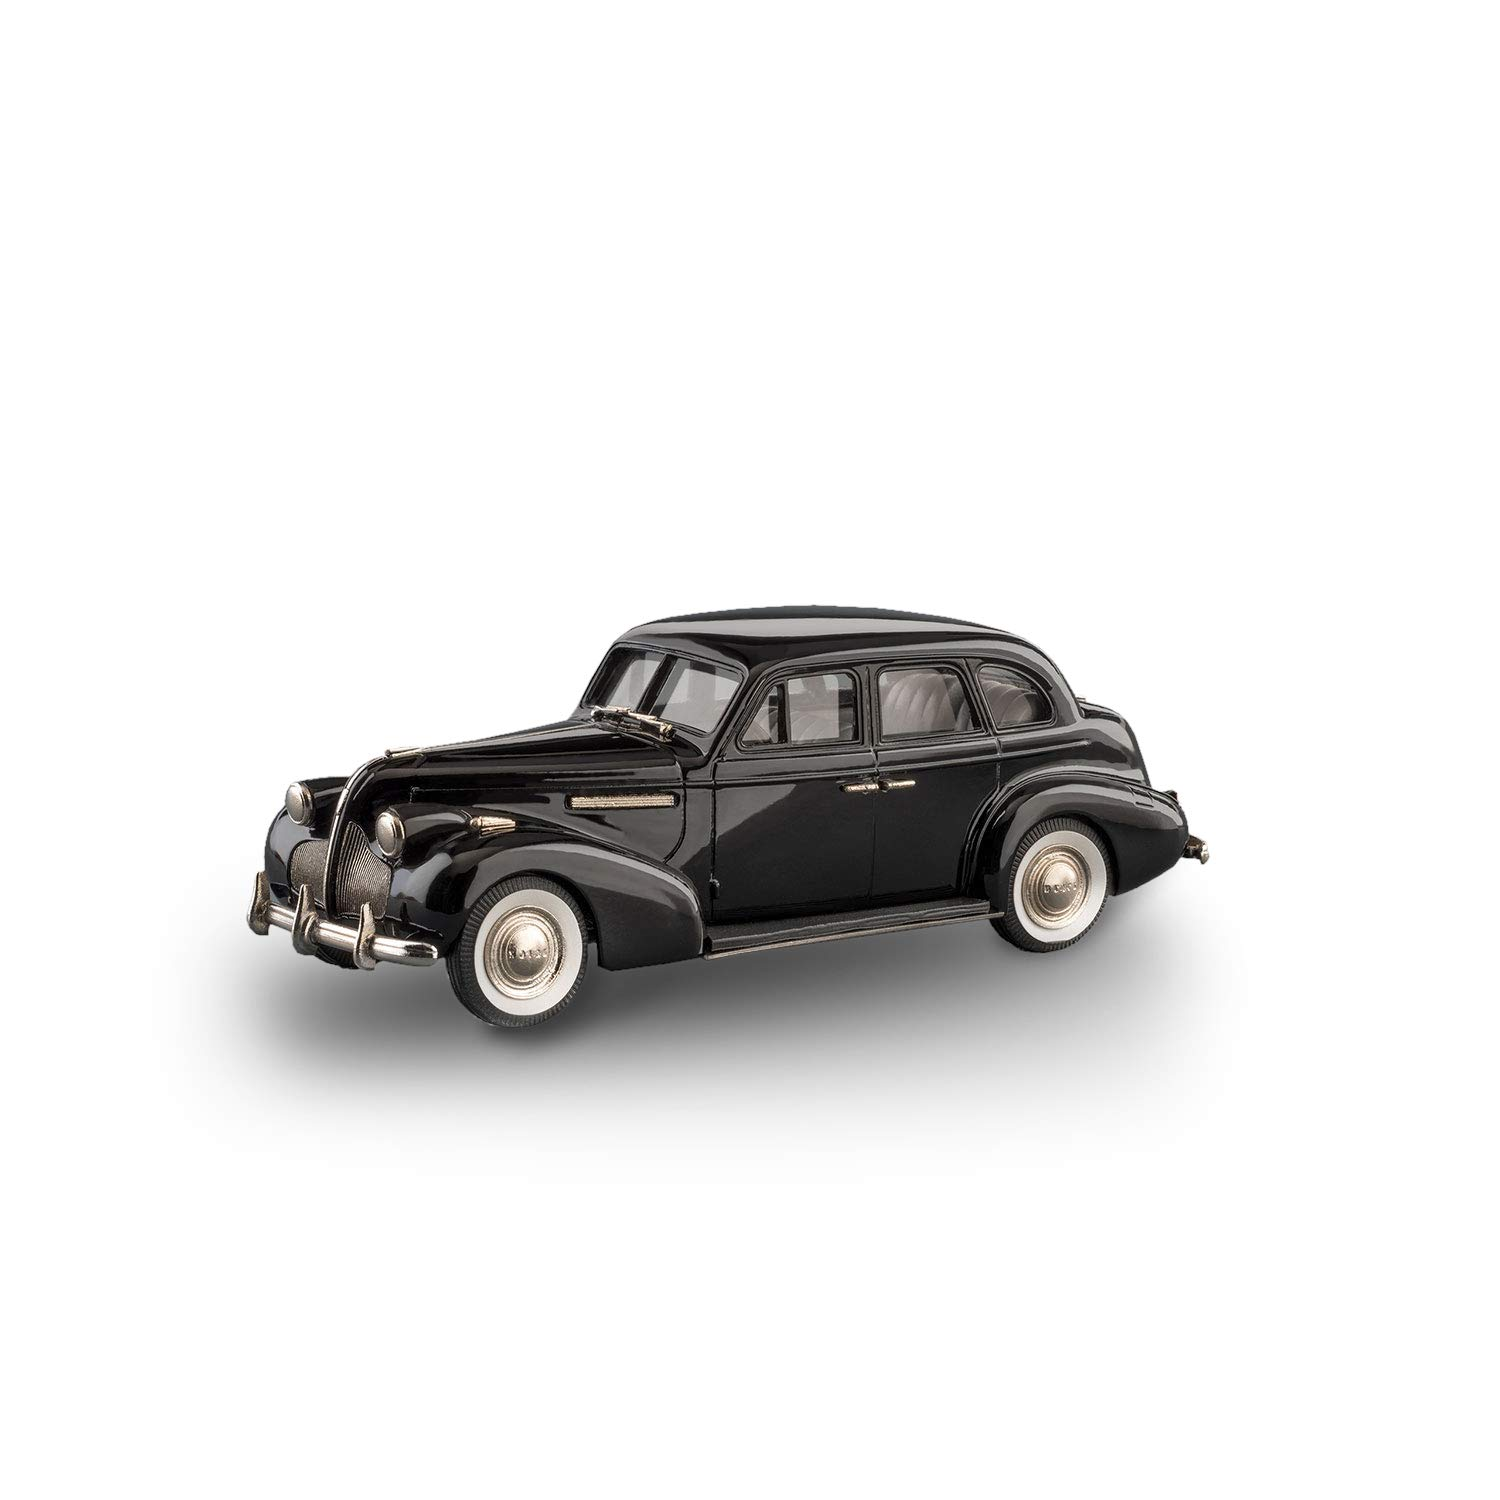 Brooklin Models - 1939 Buick Century 4 Door Sedan M-61 - BC007 - nero (1 43 Scala)